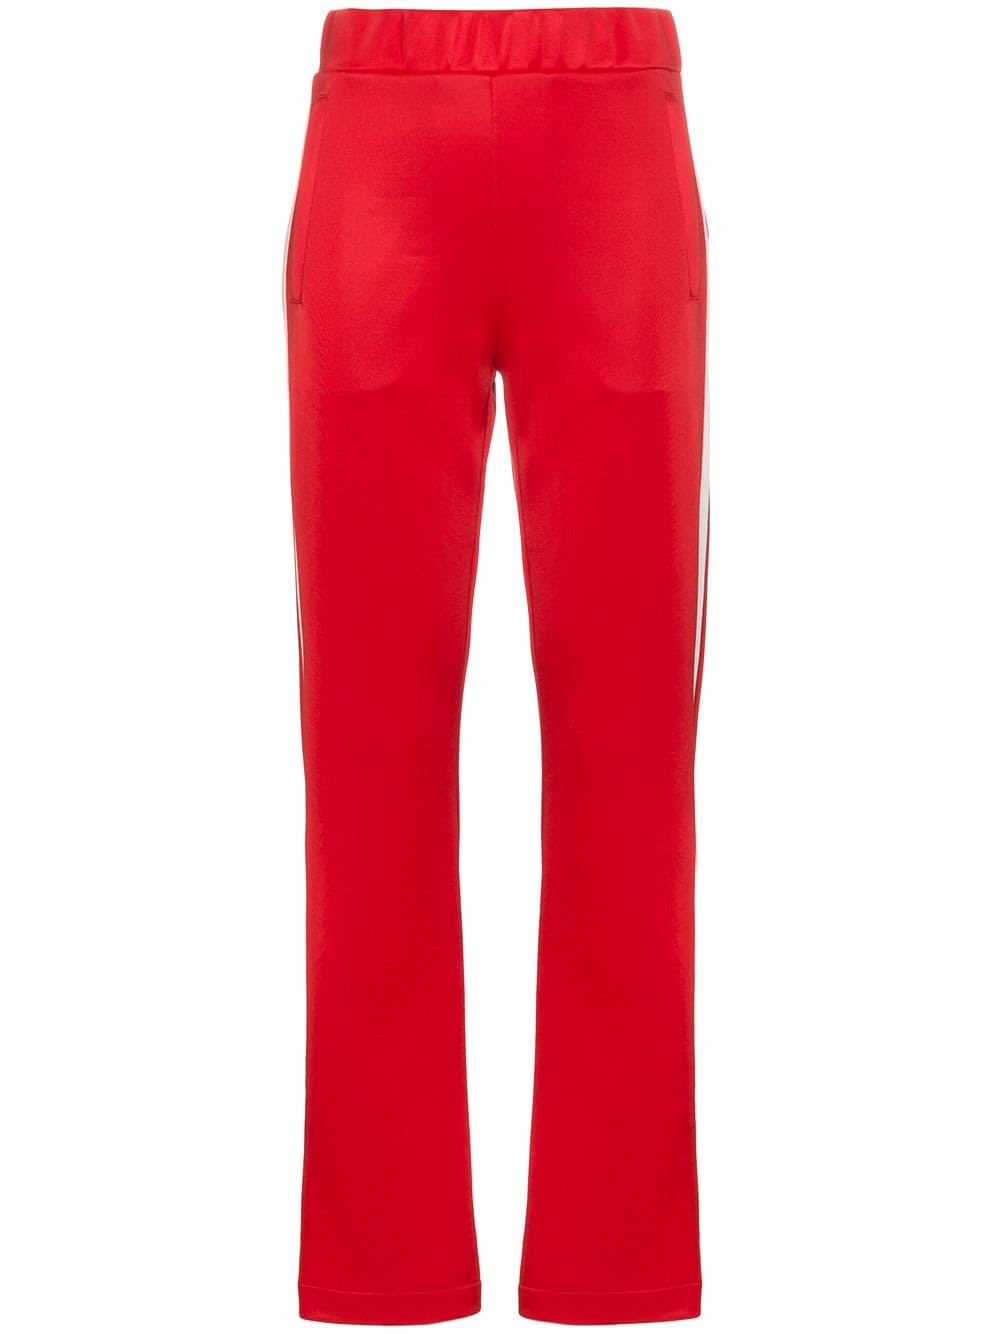 bb44e7d75 Moncler side stripe track pants - Red in 2019 | Products | Moncler ...